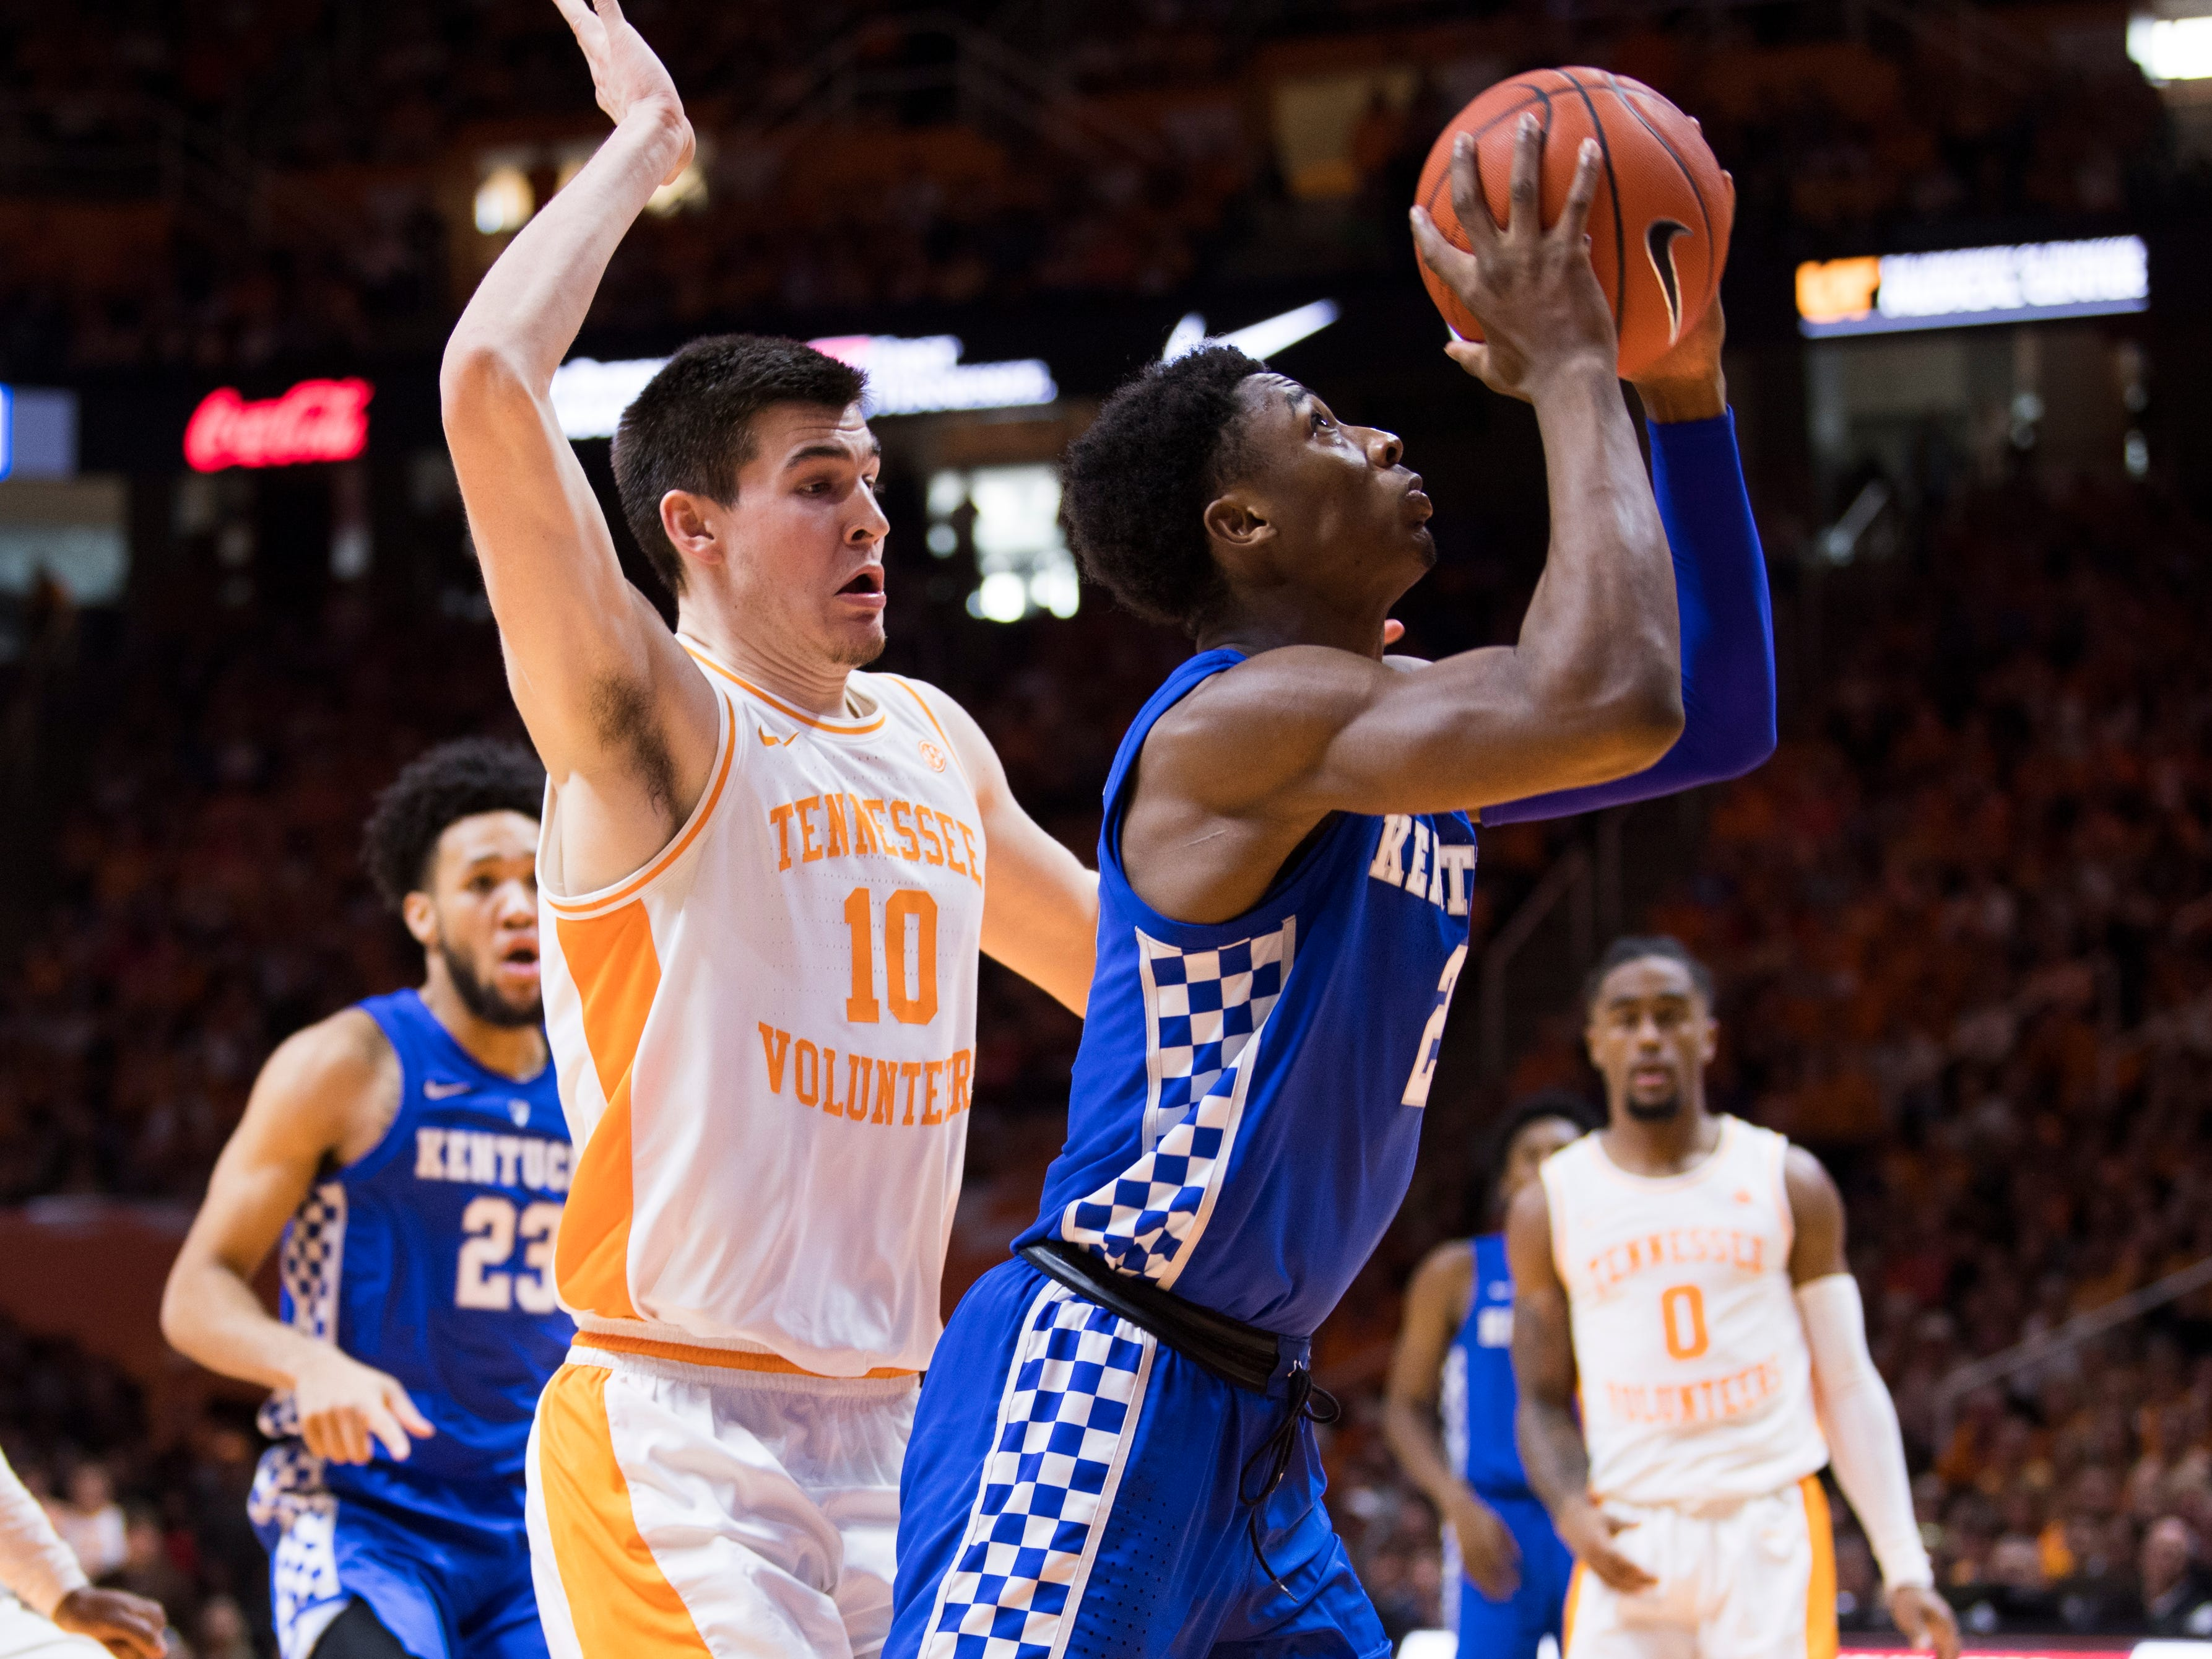 Tennessee forward John Fulkerson (10) defends Kentucky guard Ashton Hagans (2) during Tennessee's home basketball game against Kentucky at Thompson-Boling Arena in Knoxville on Saturday, March 2, 2019.